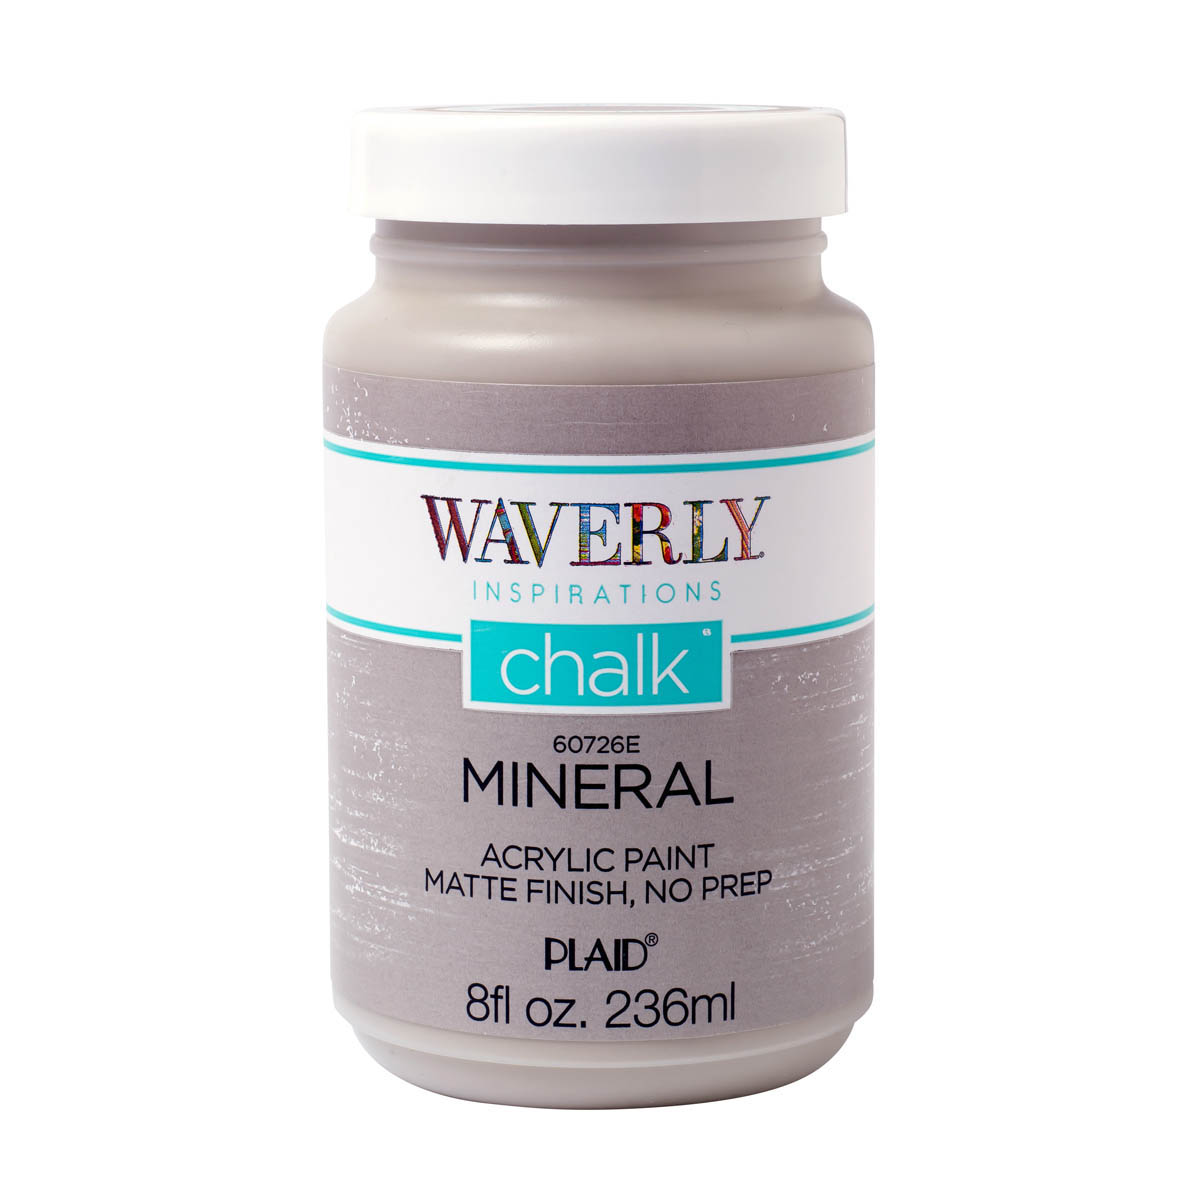 Waverly ® Inspirations Chalk Acrylic Paint - Mineral, 8 oz.